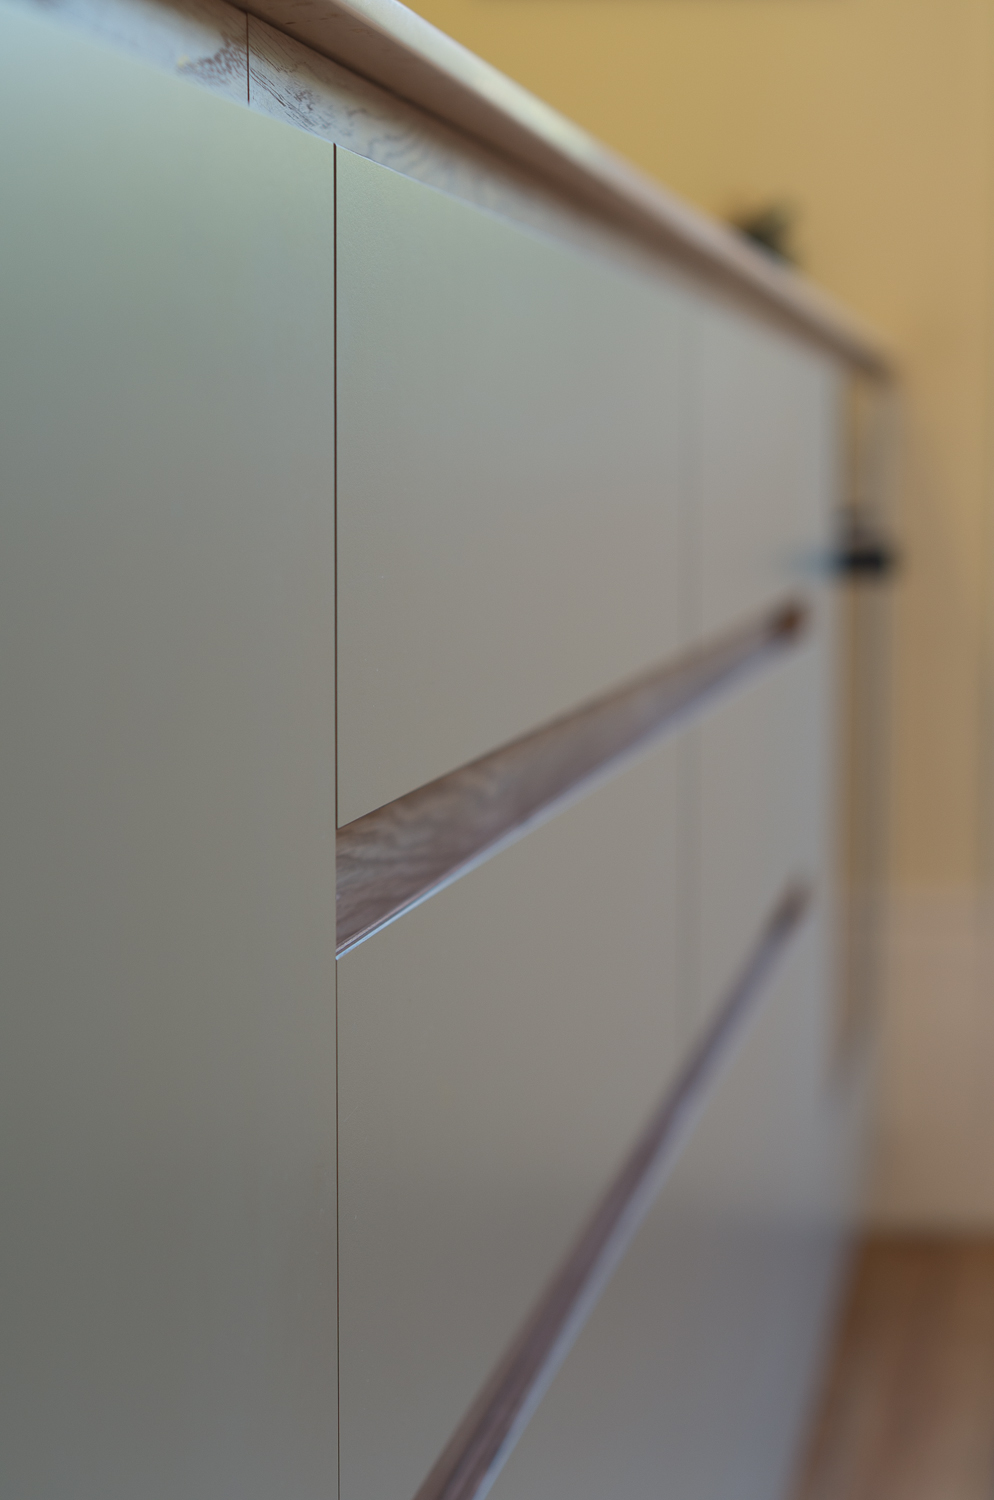 Copy of Crouch end kitchen handle less design